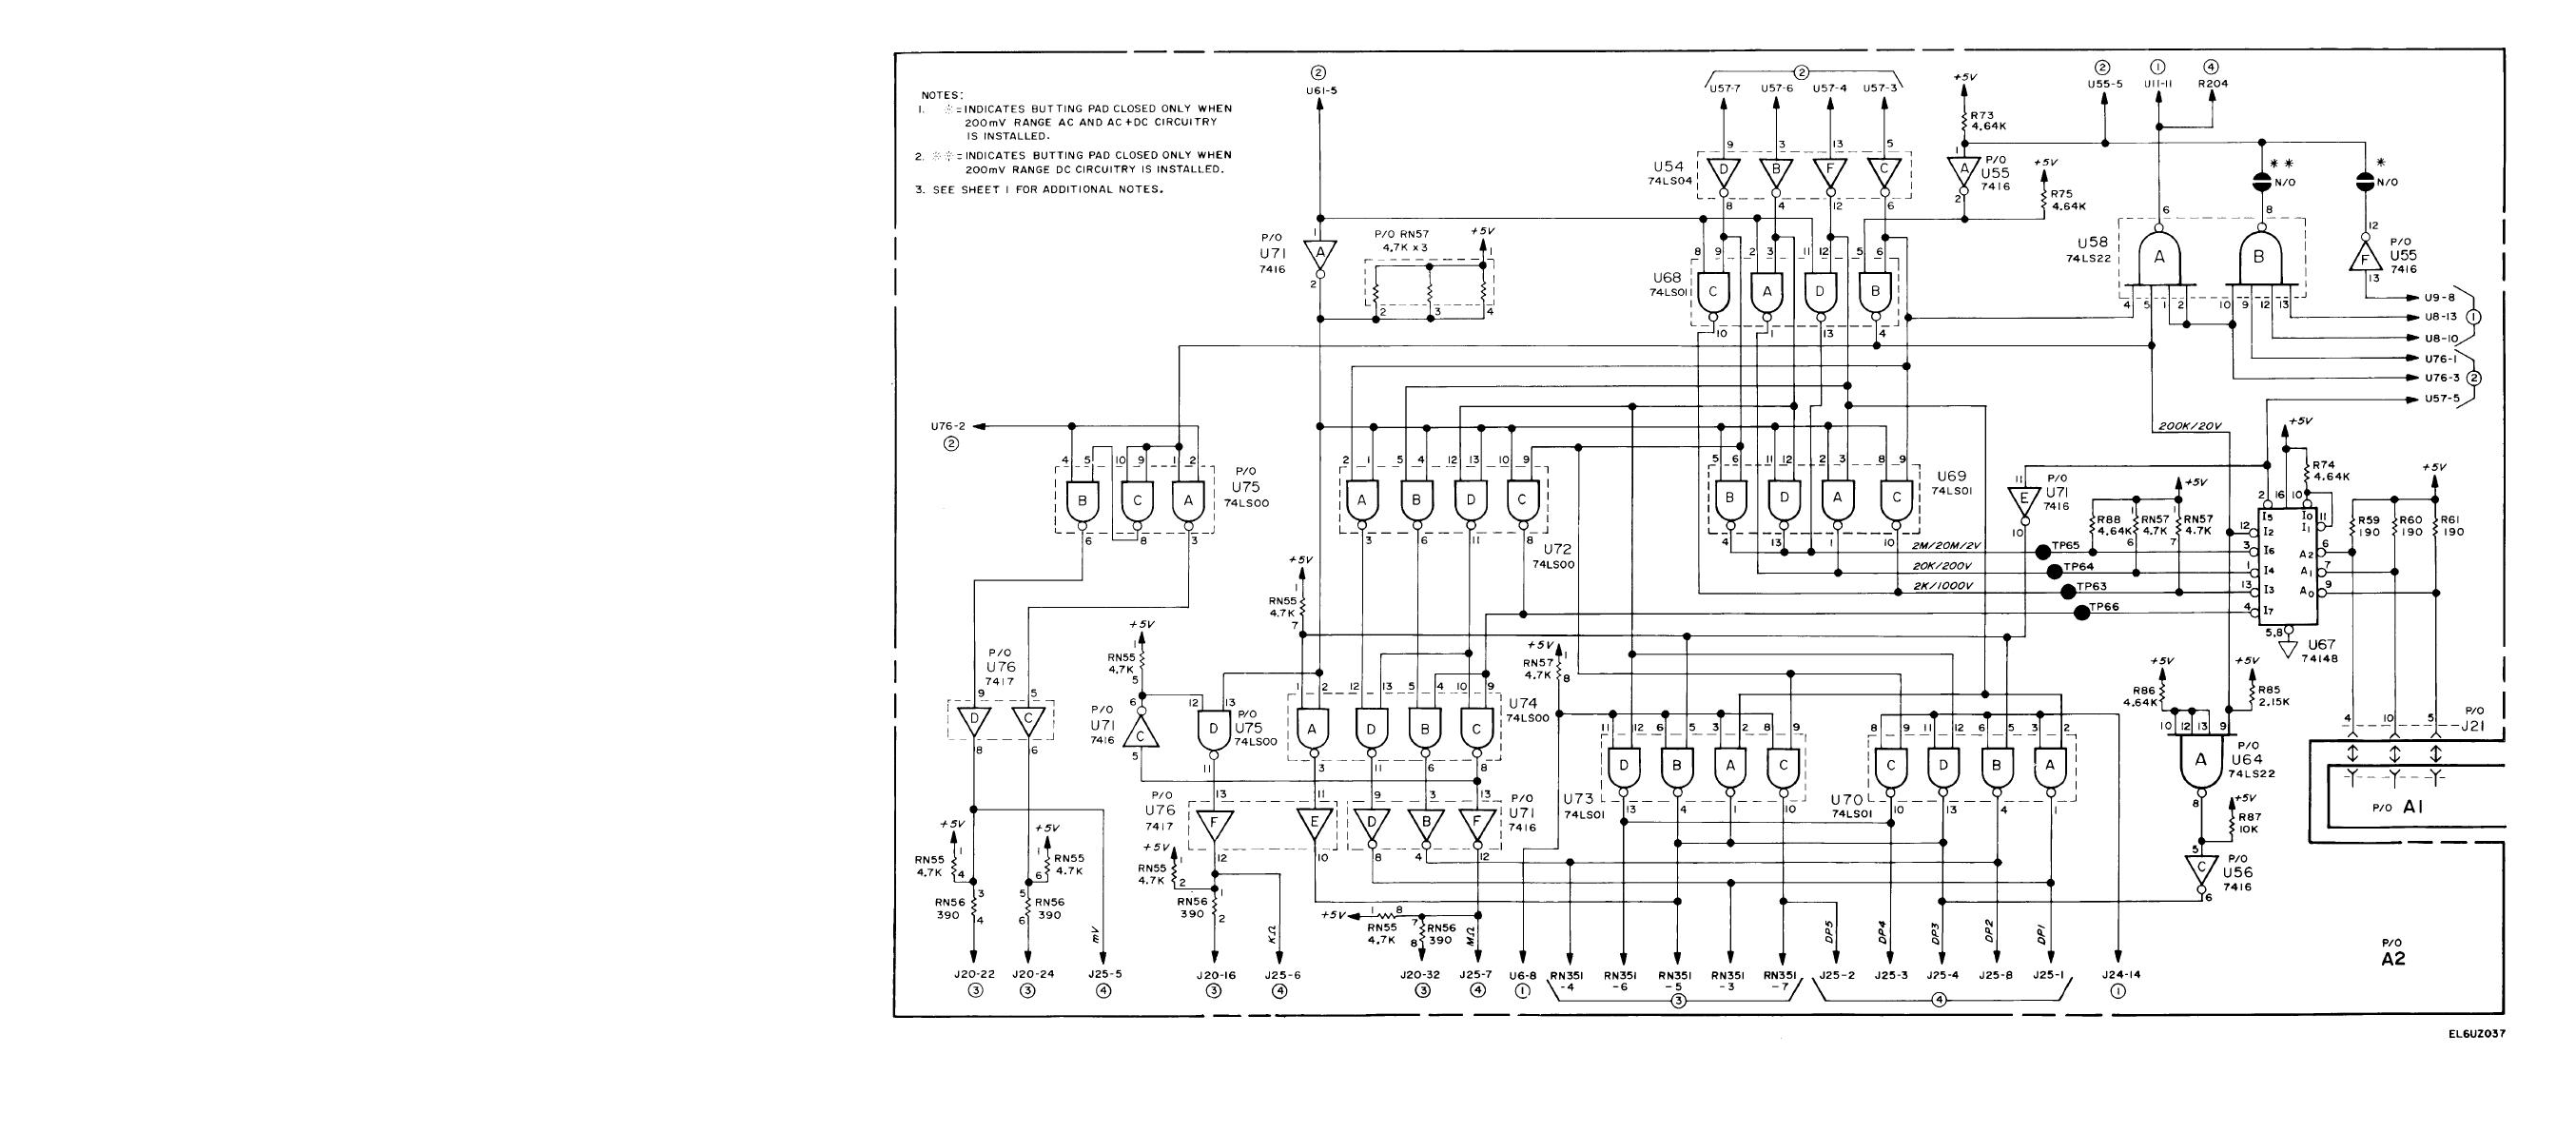 Figure Fo 11 Range Encoder Dp Encoder Circuits A2